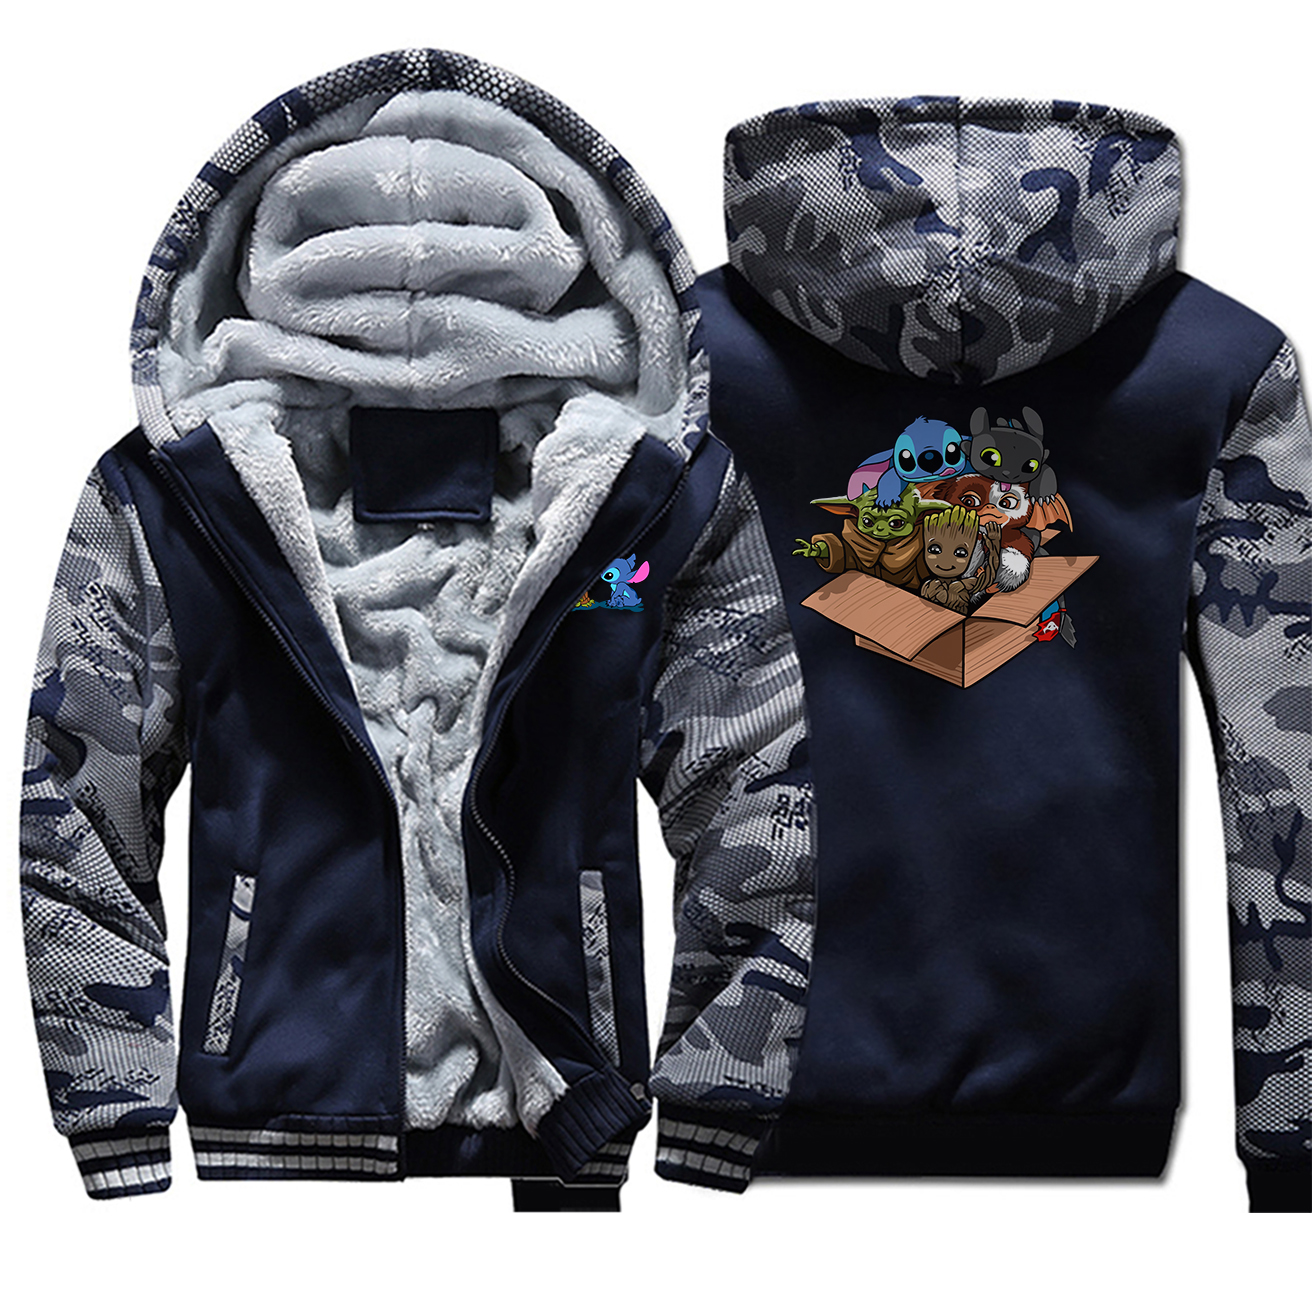 Baby Yoda Stitch Groot Camo Thick Warm Jacket Mens Kawaii Full Hoodies Zipper Hoodie Sweatshirt The Mandalorian Casaco Masculino